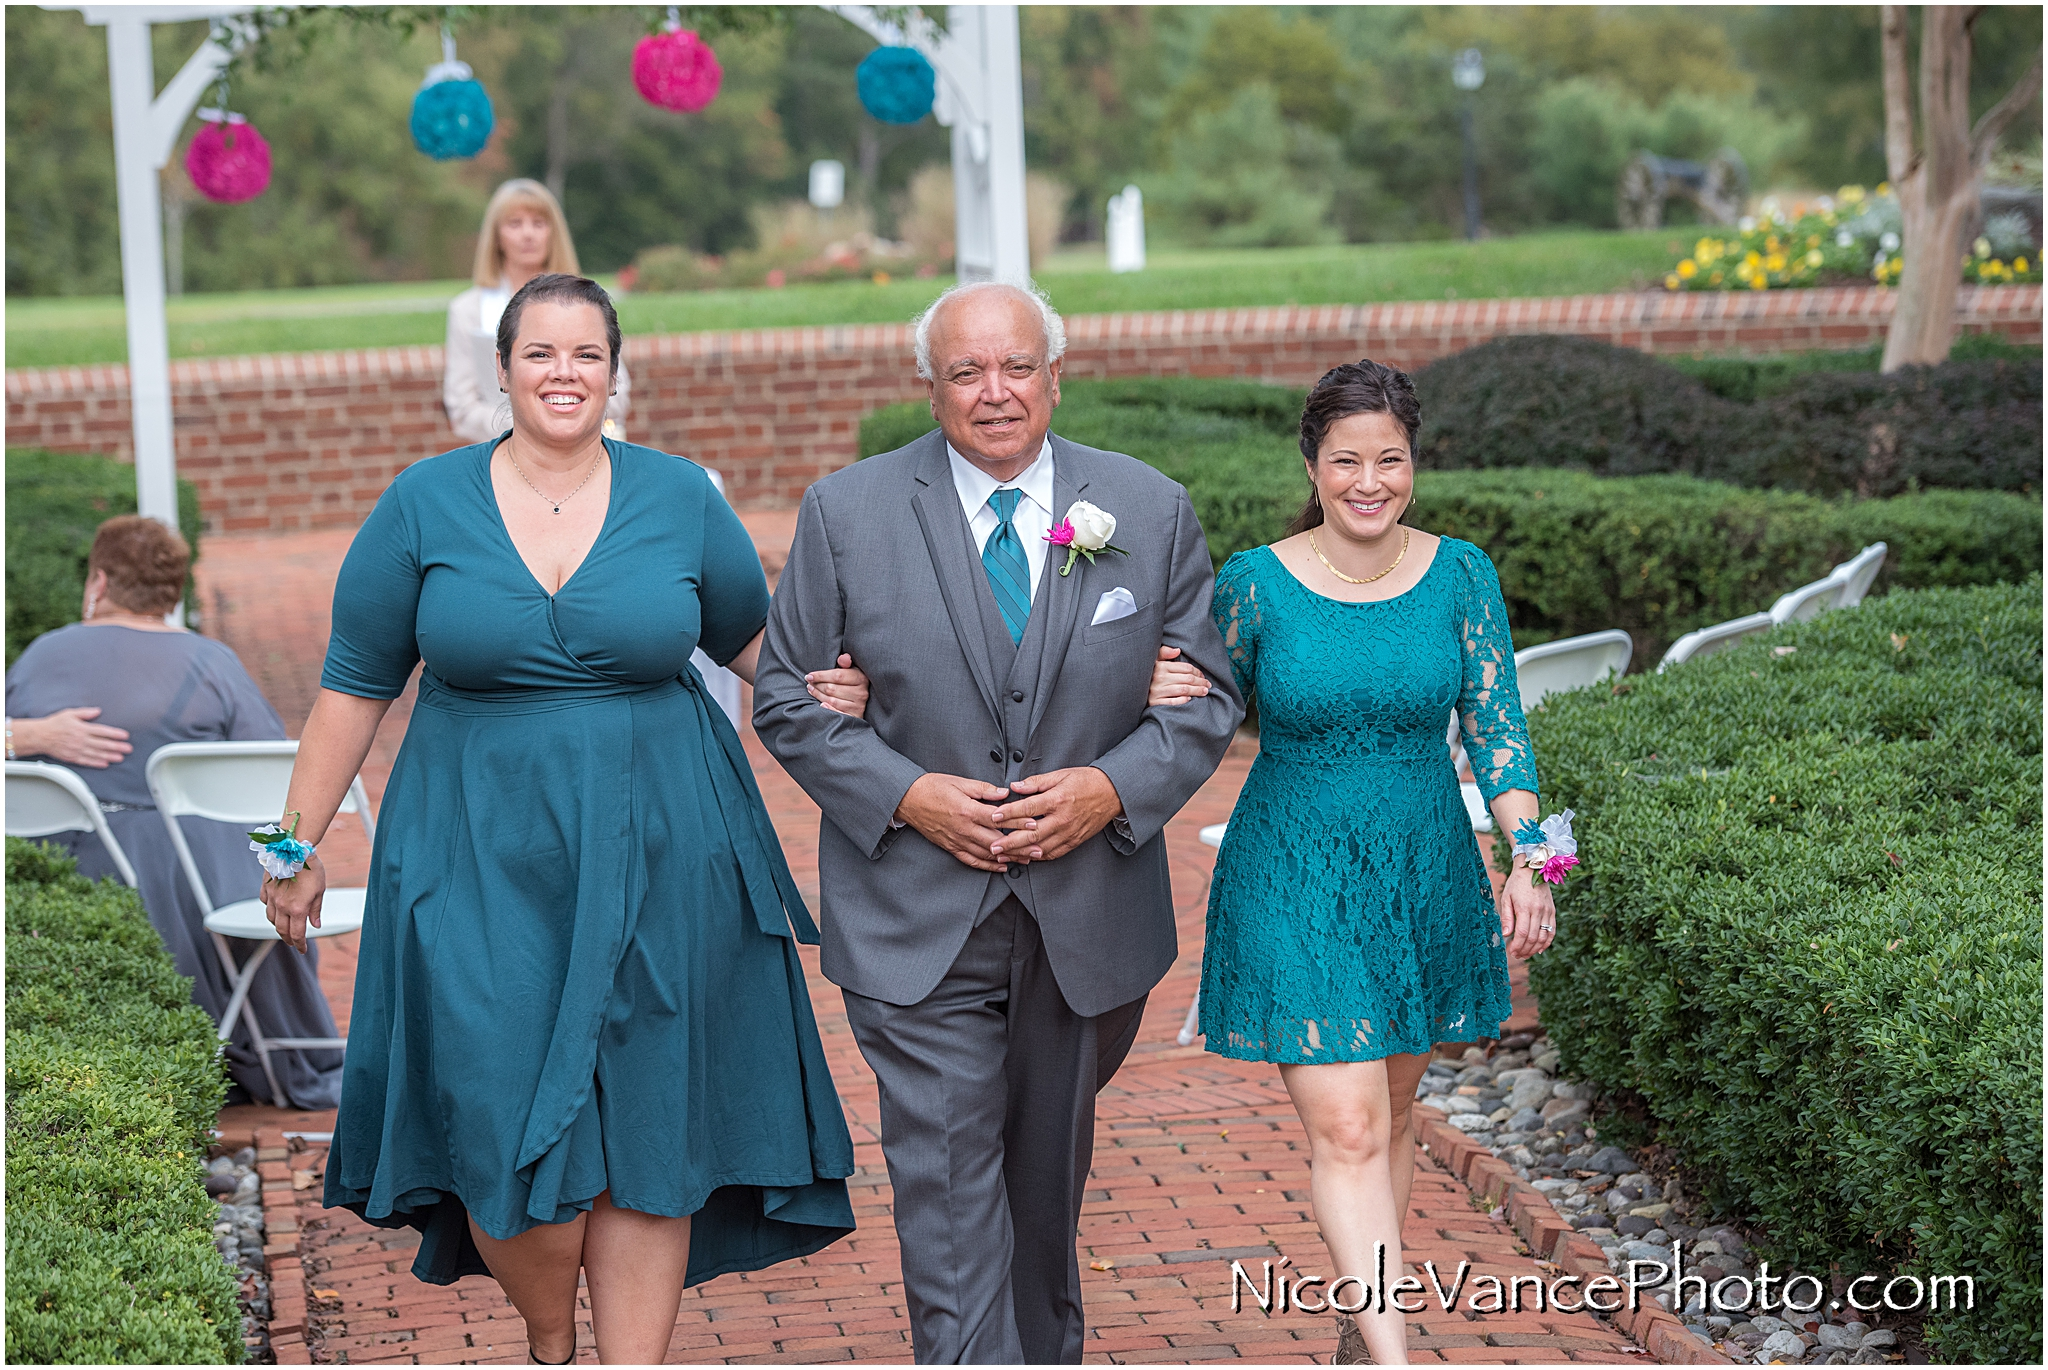 The family exits the ceremony at Virginia Crossings.